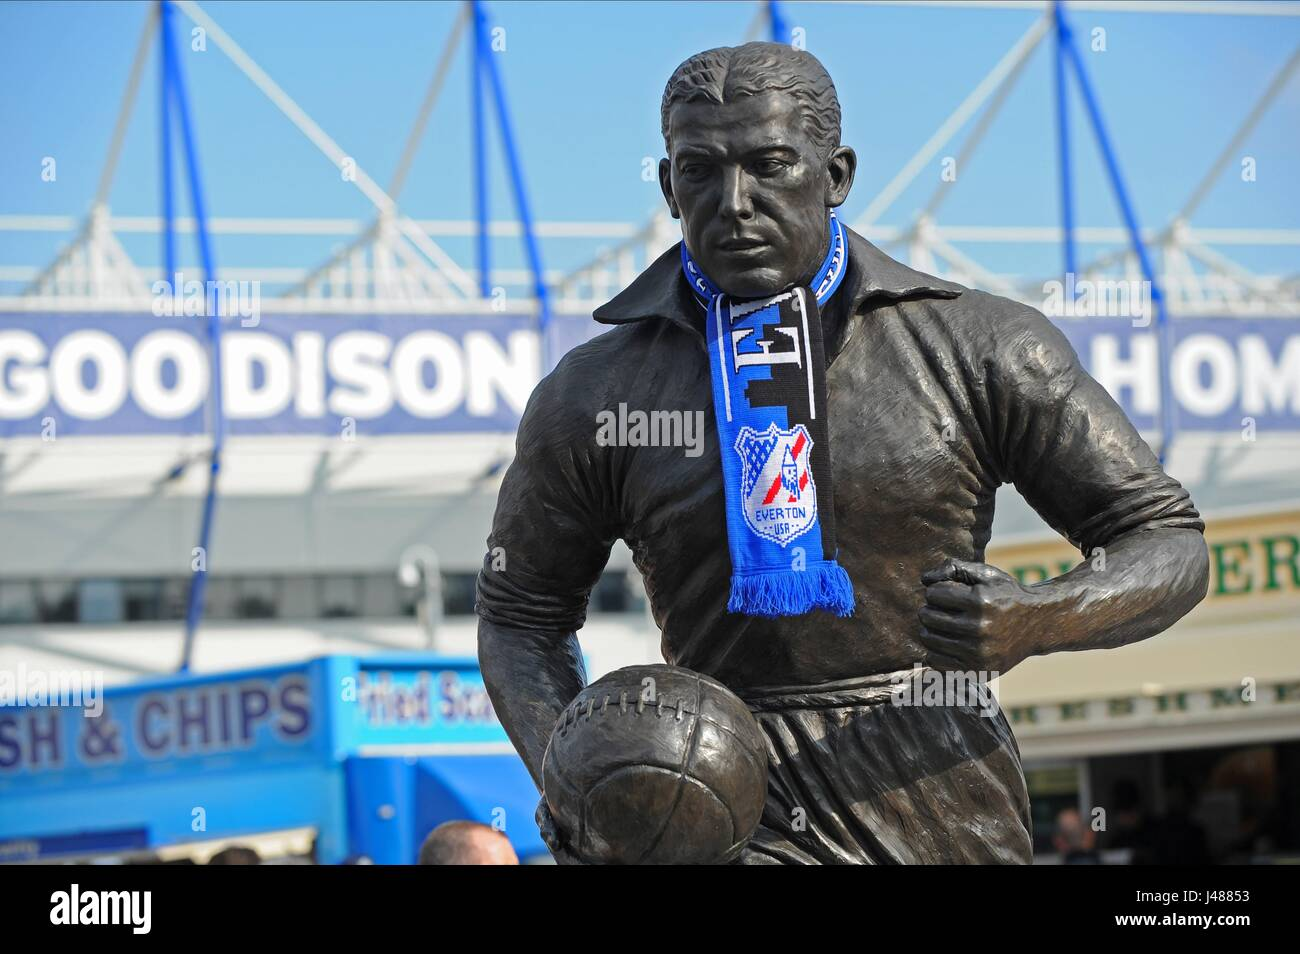 DIXIE DEAN STATUE WITH SCALF EVERTON FCV LIVERPOOL FC GOODISON